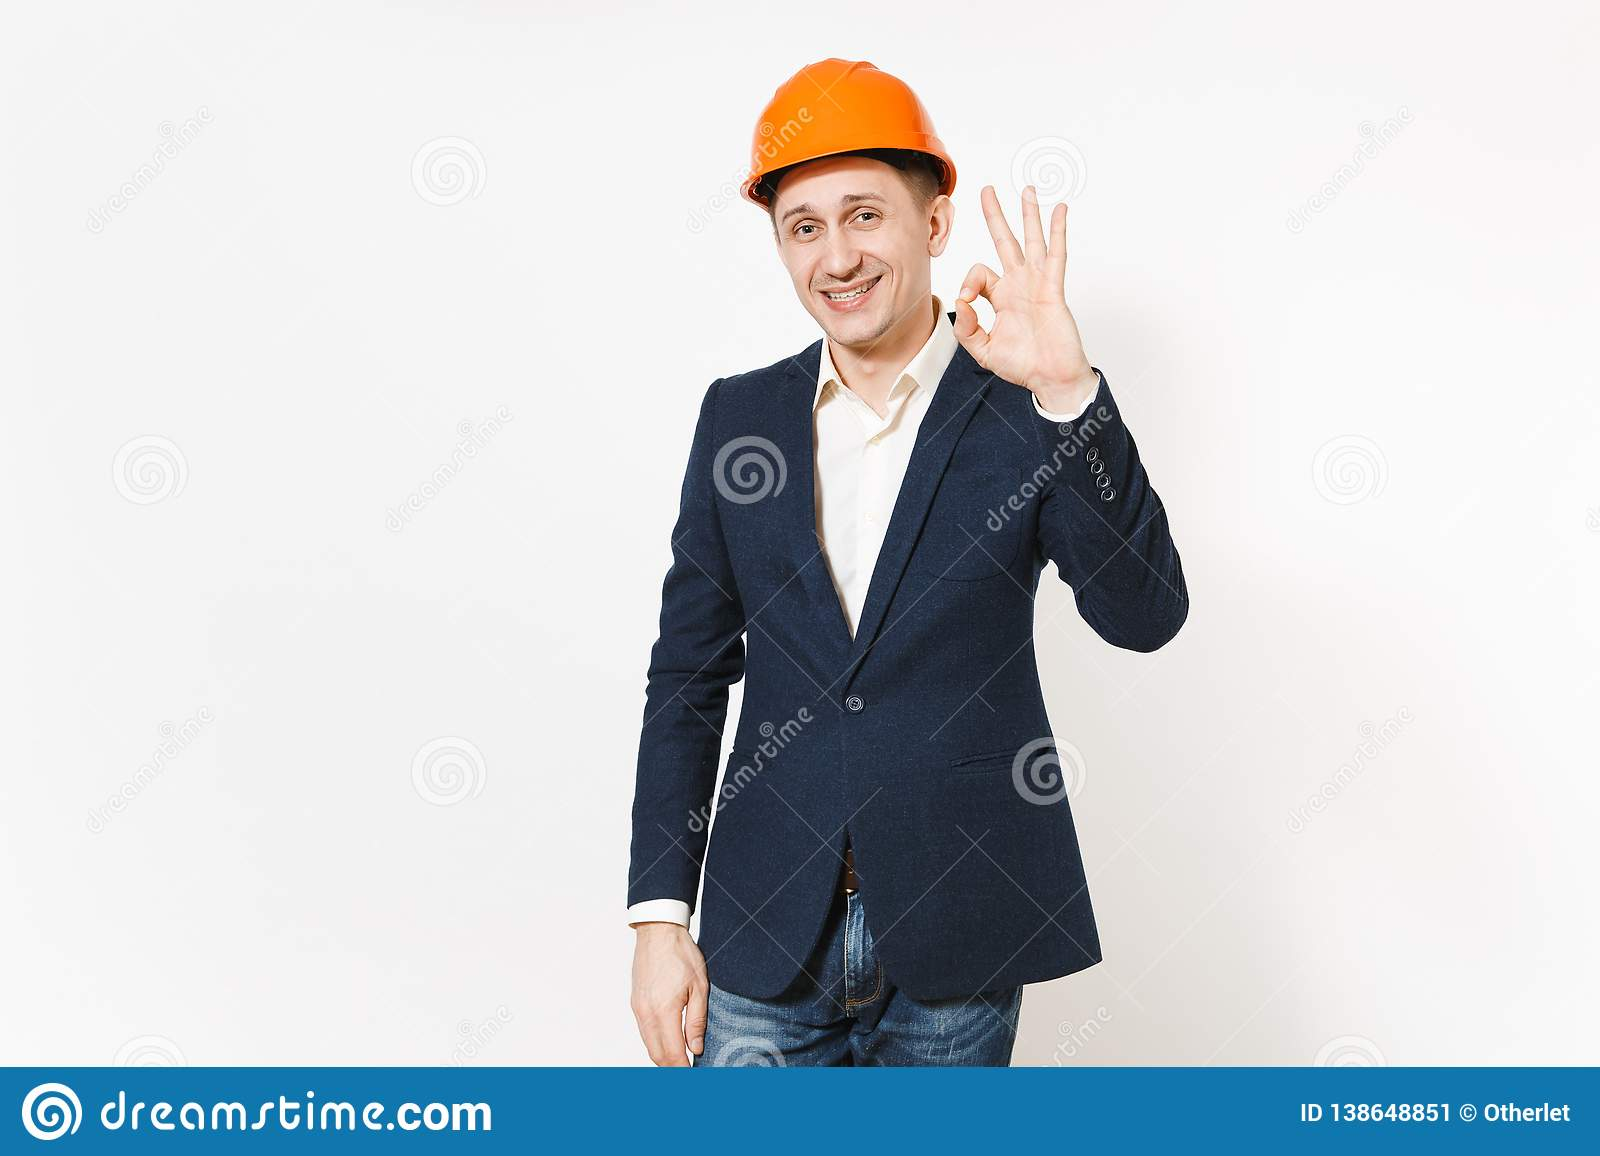 Young handsome smiling businessman in dark suit, protective construction orange helmet showing OK gesture isolated on